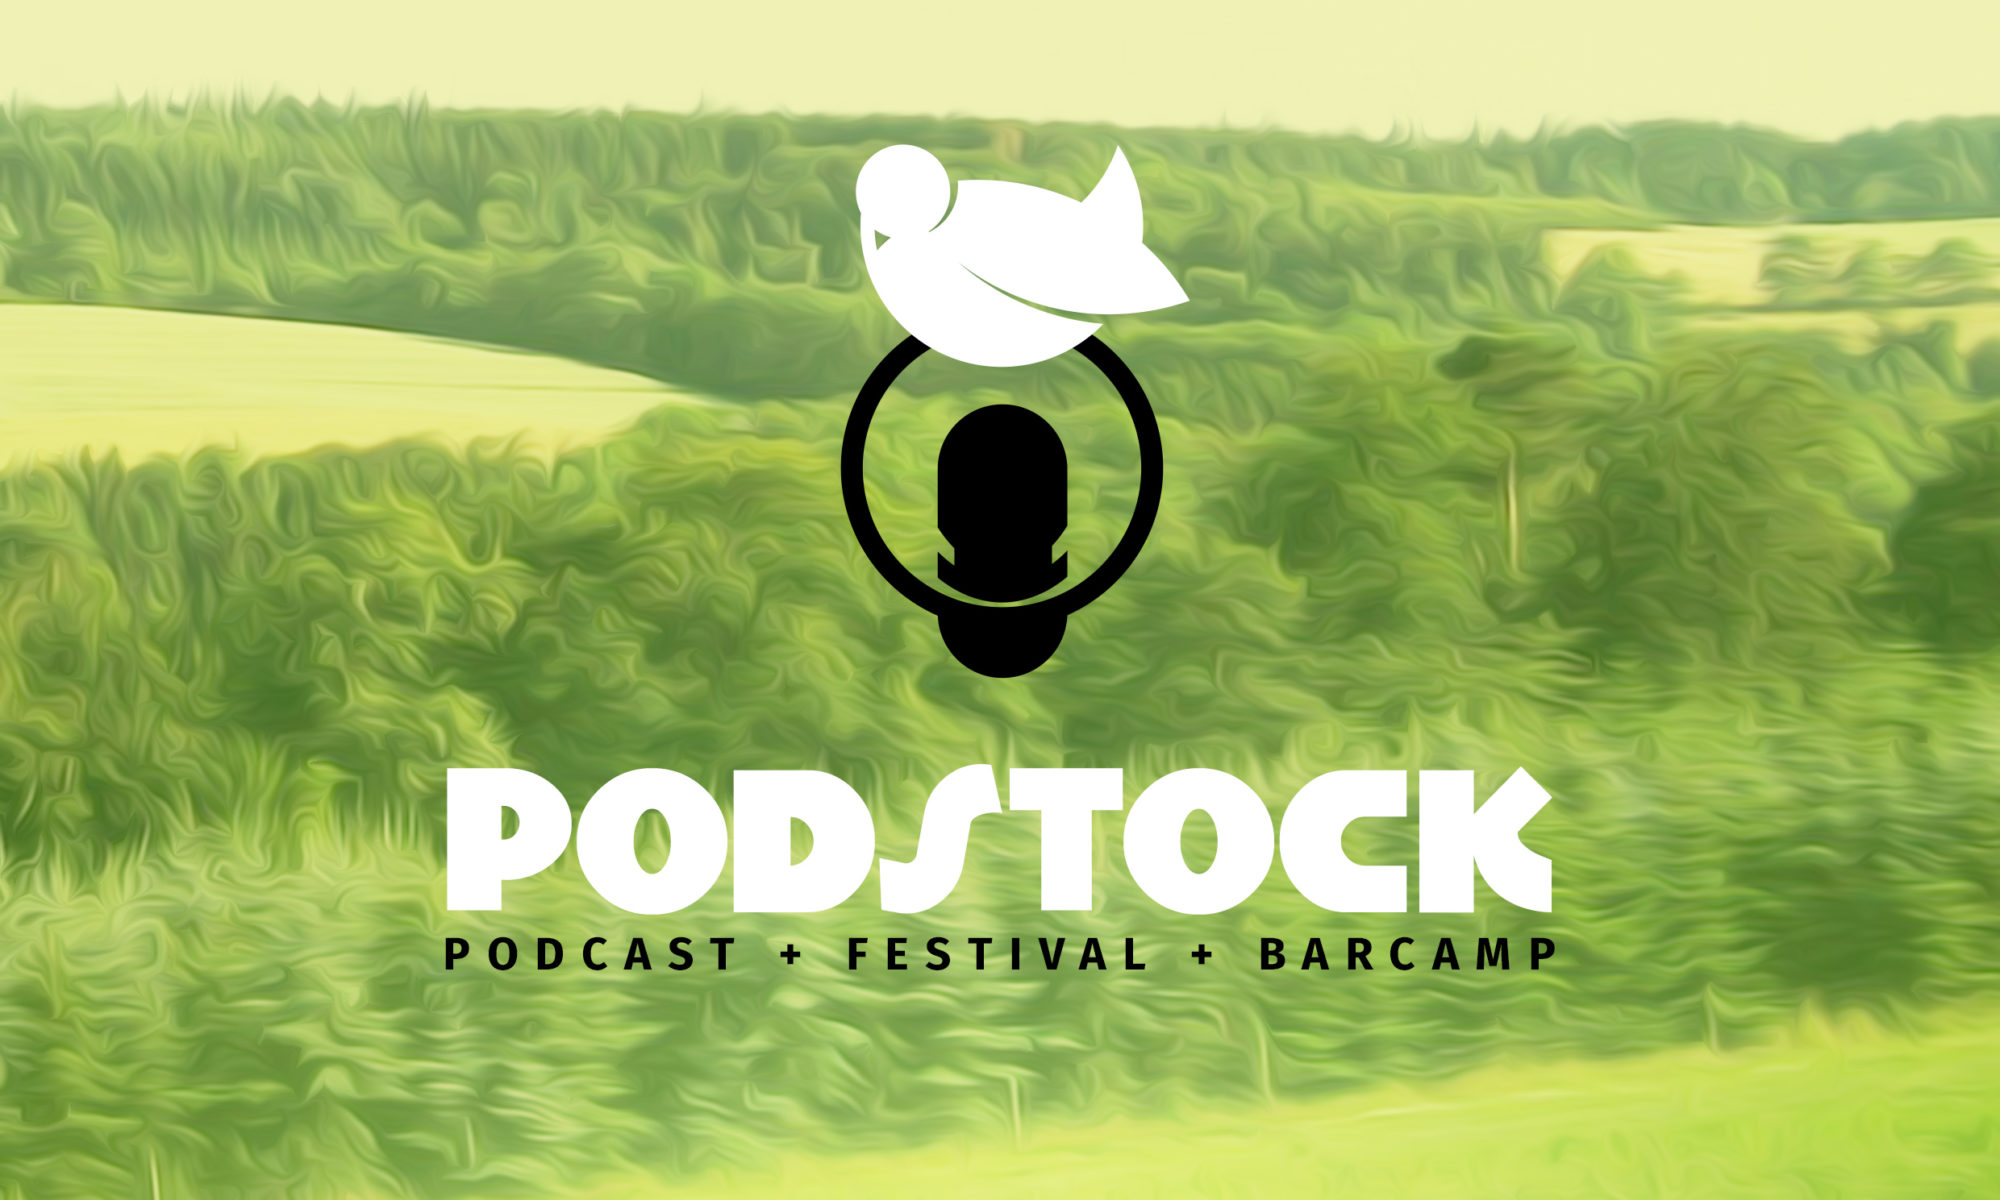 Podstock - Podcast